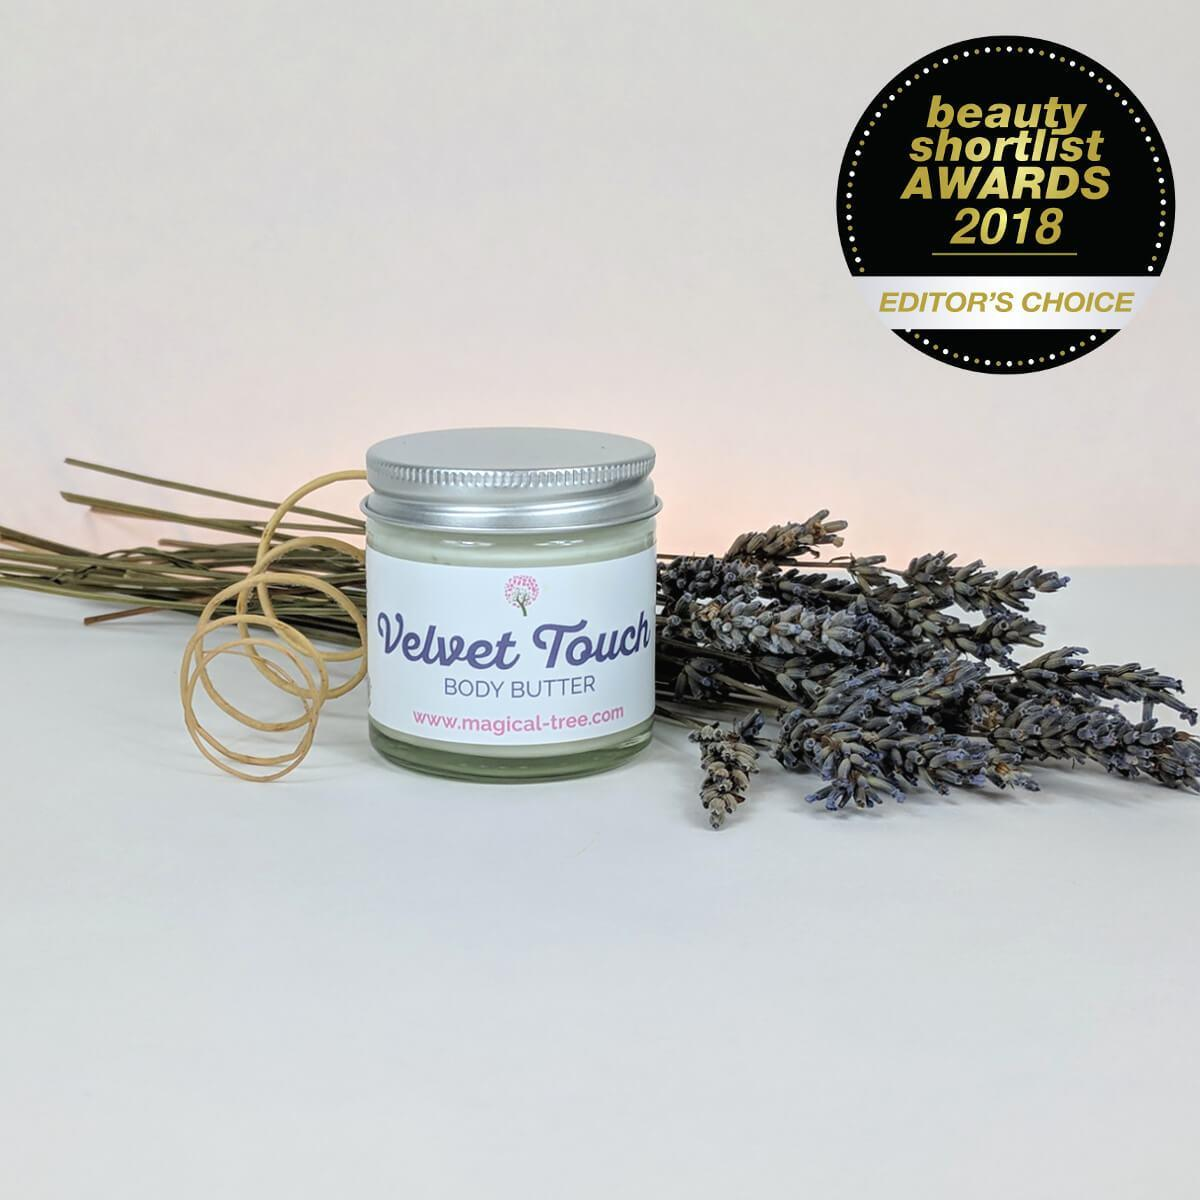 Velvet Touch Plastic-Free Body Butter